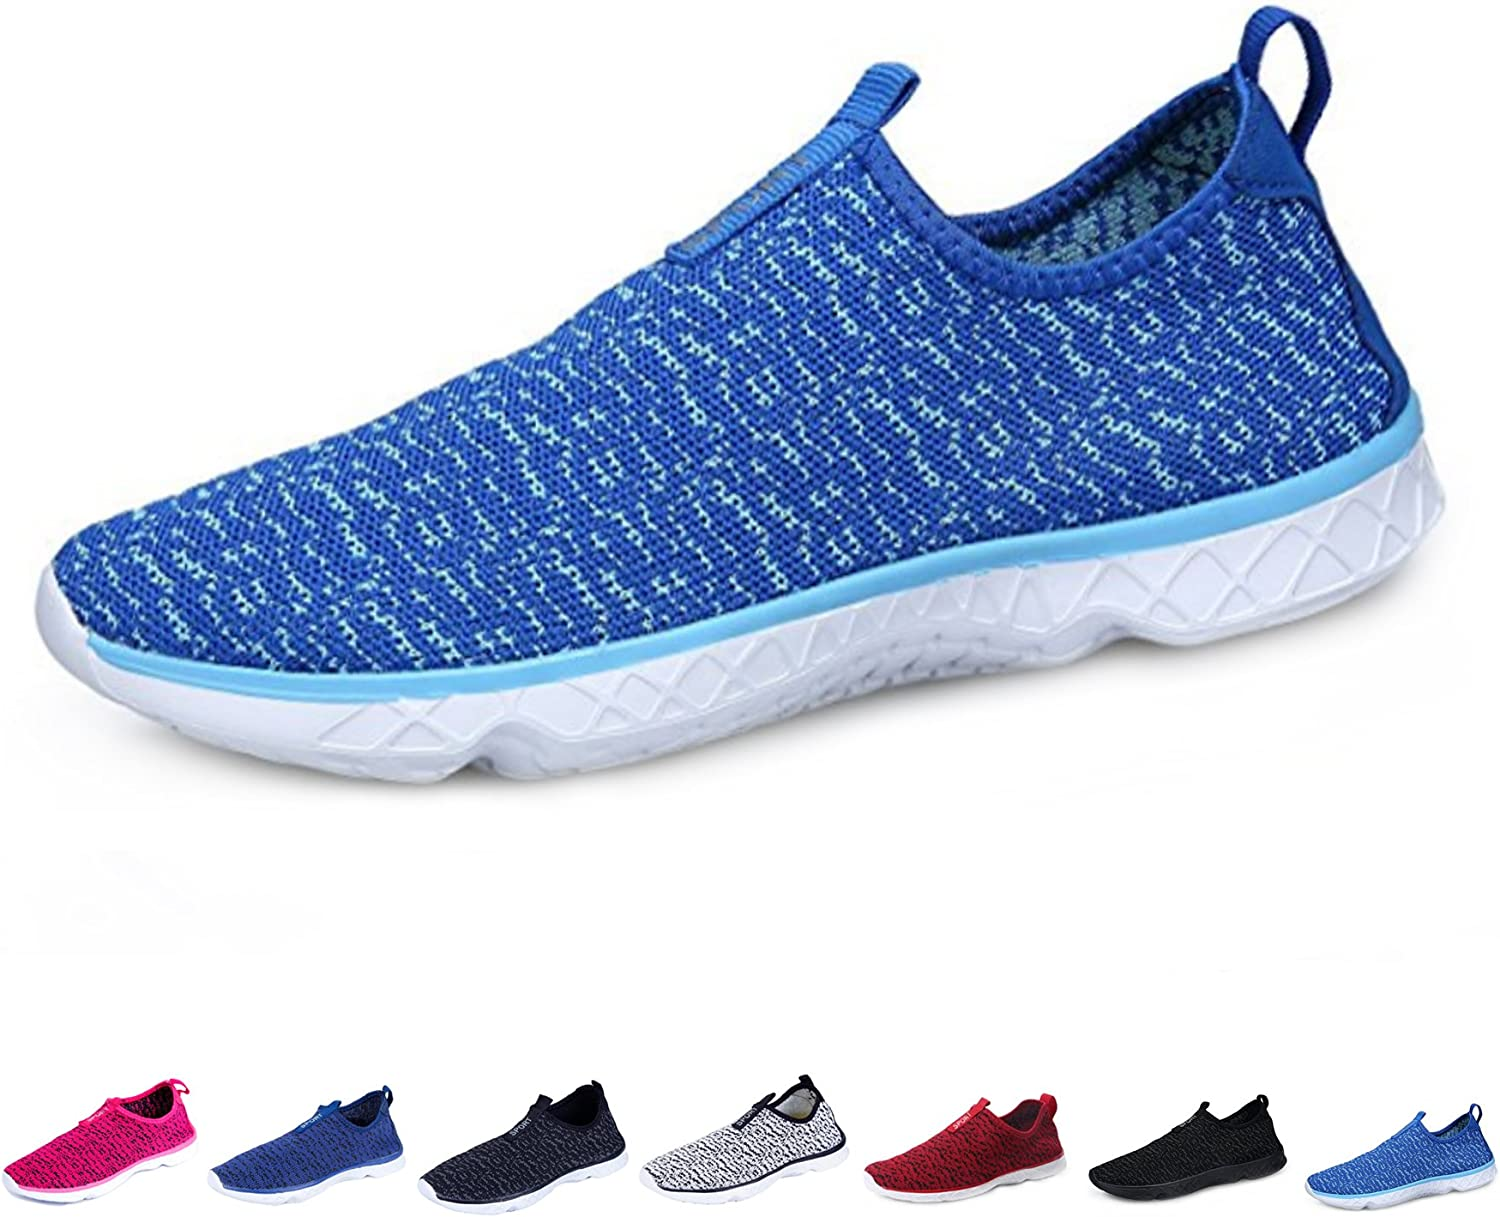 Kealux Men Women Lightweight Water shoes Walking Sneaker Quick-Dry Water Sport Barefoot shoes